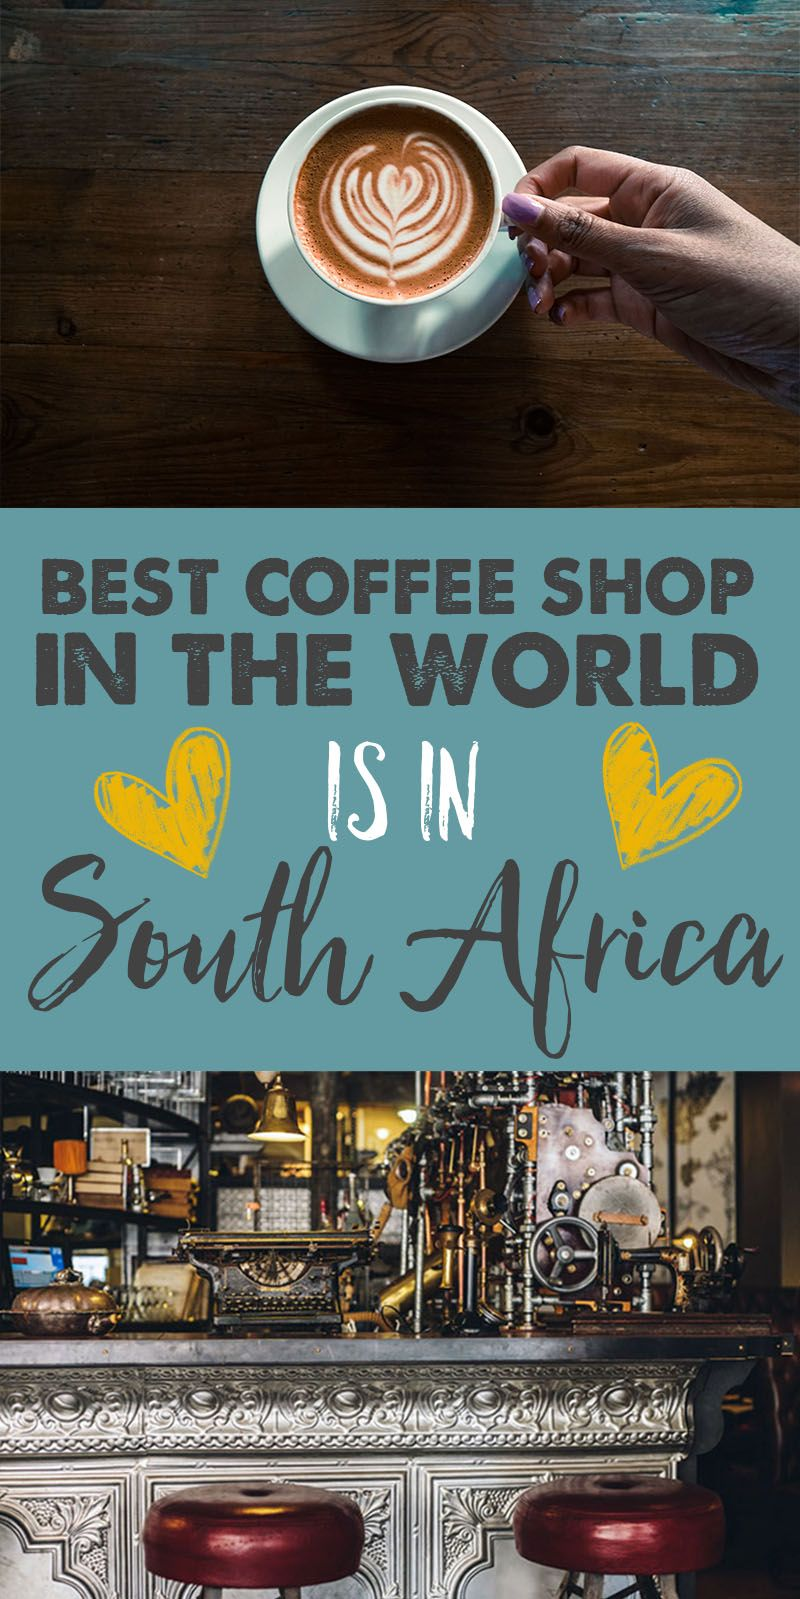 Truth Coffee in Cape Town, South Africa best coffee shop